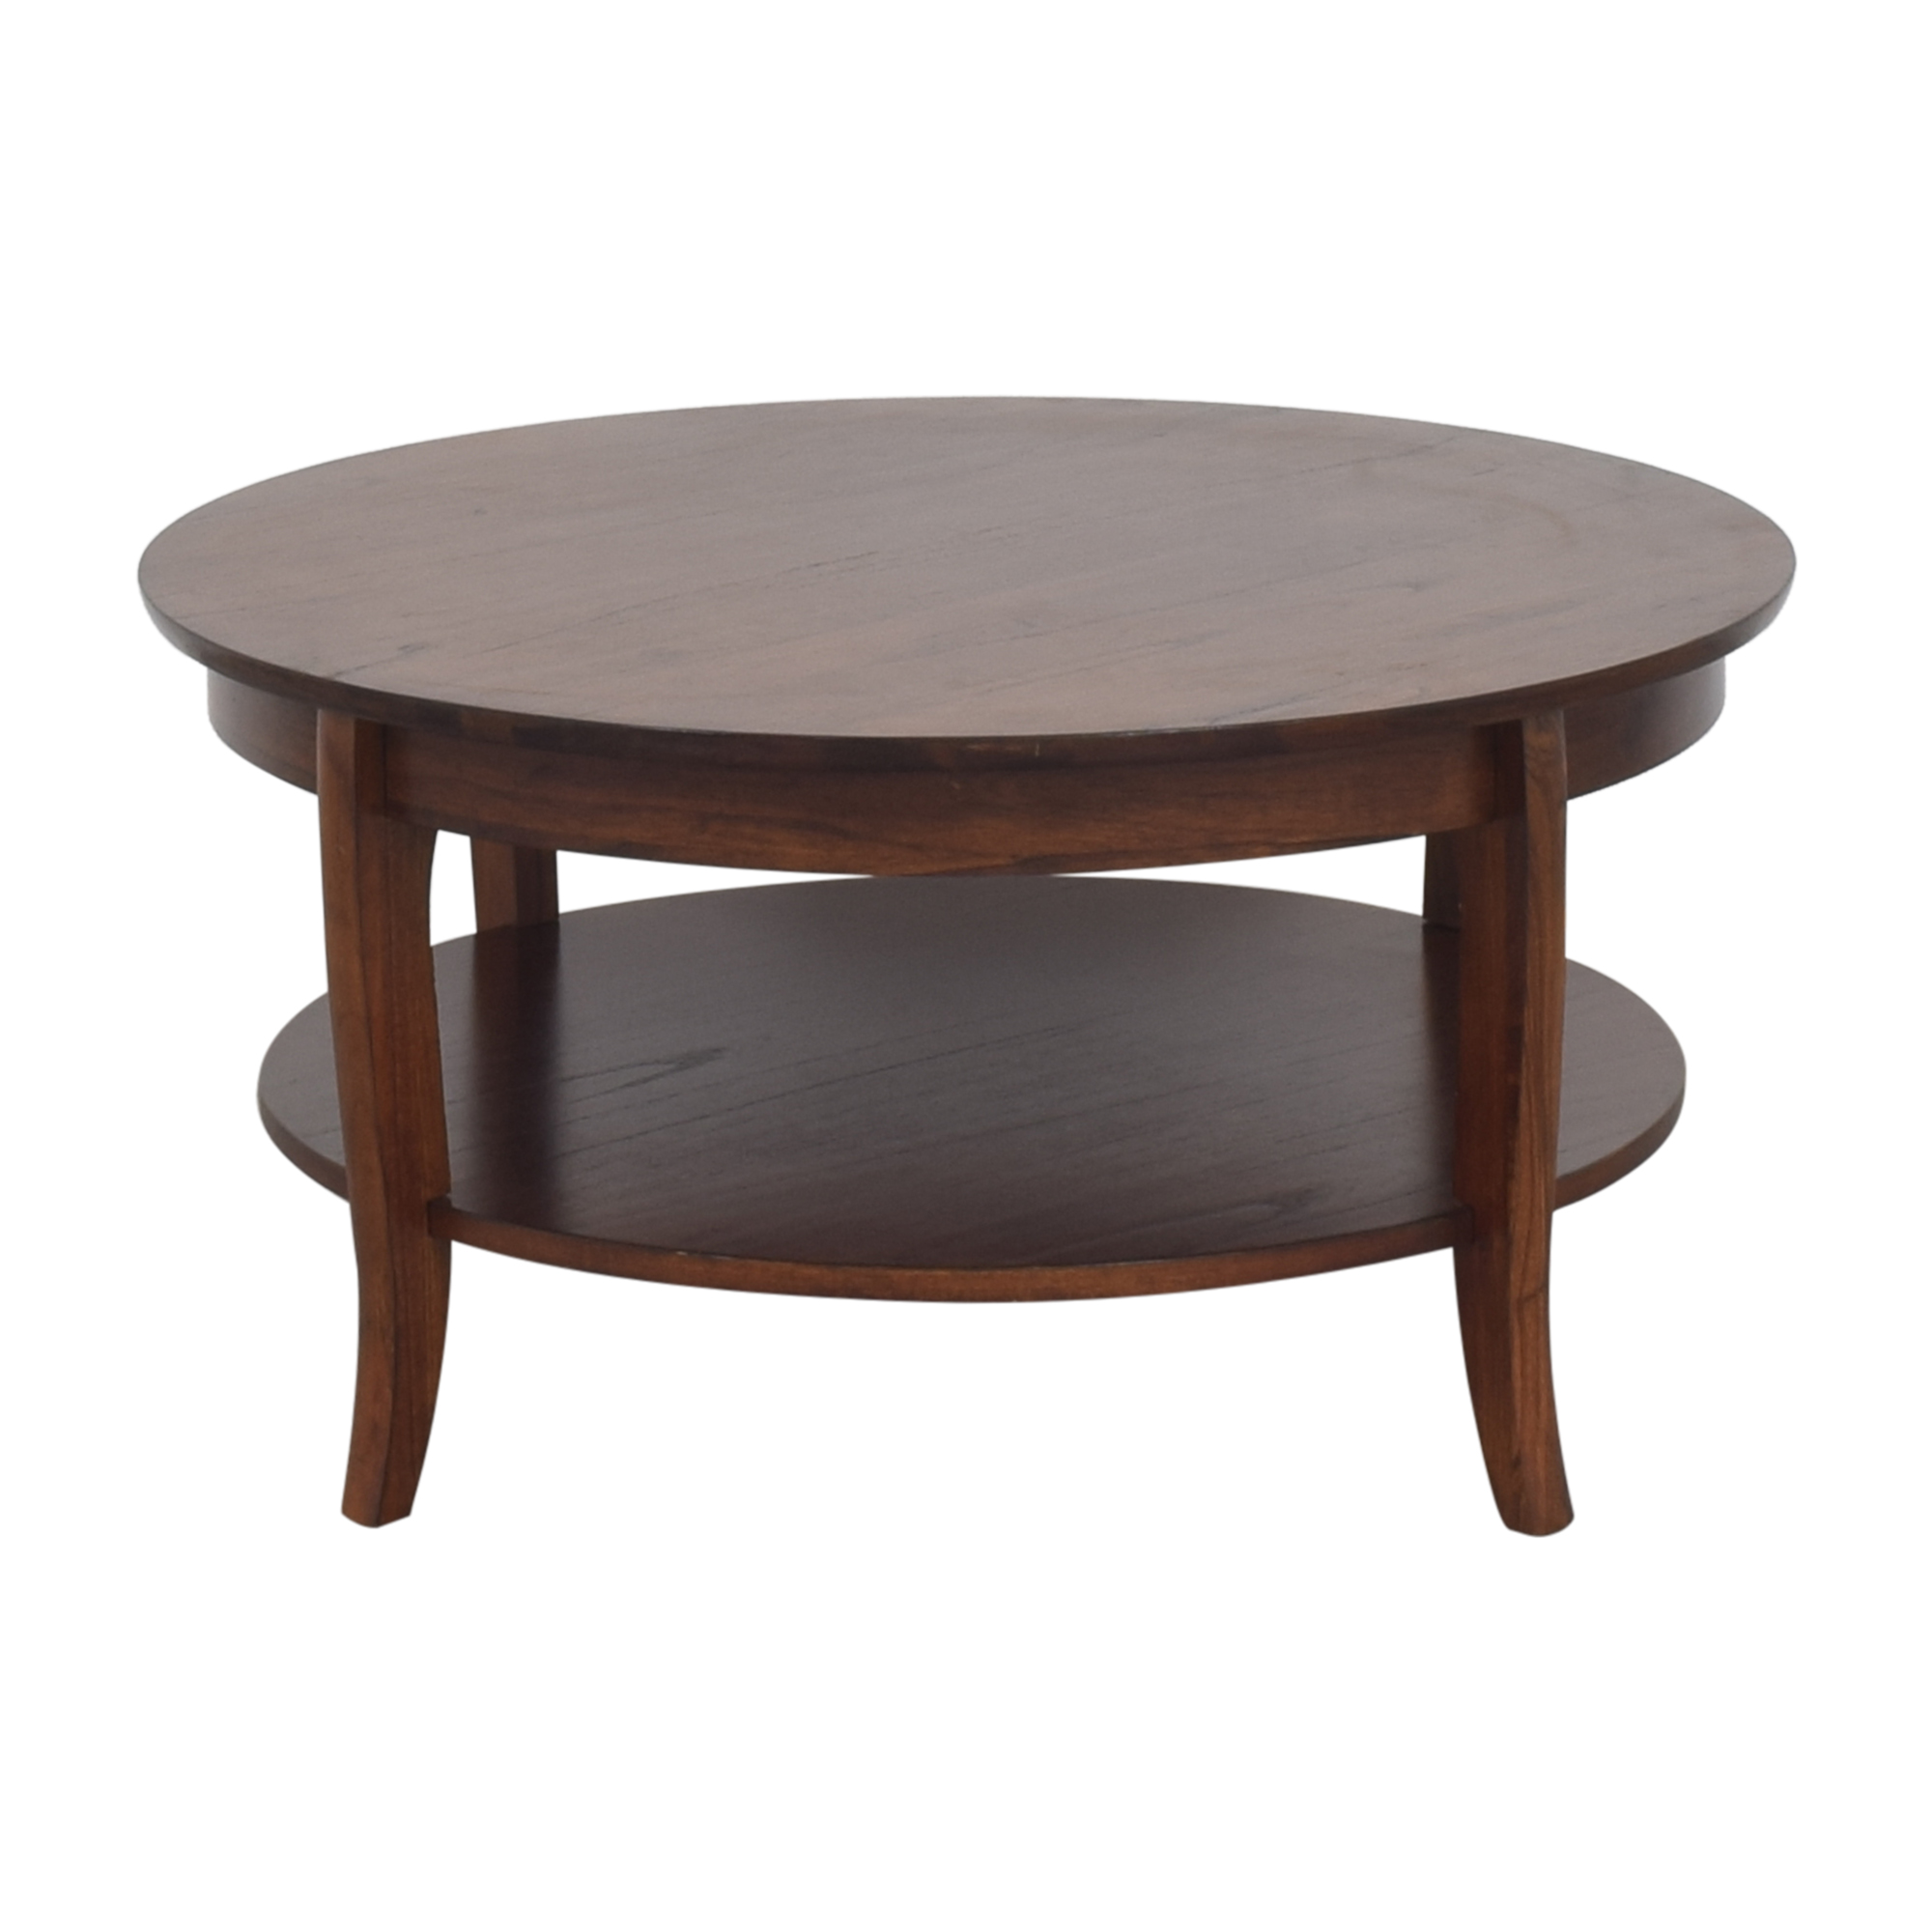 Macy's Macy's Round Coffee Table  pa